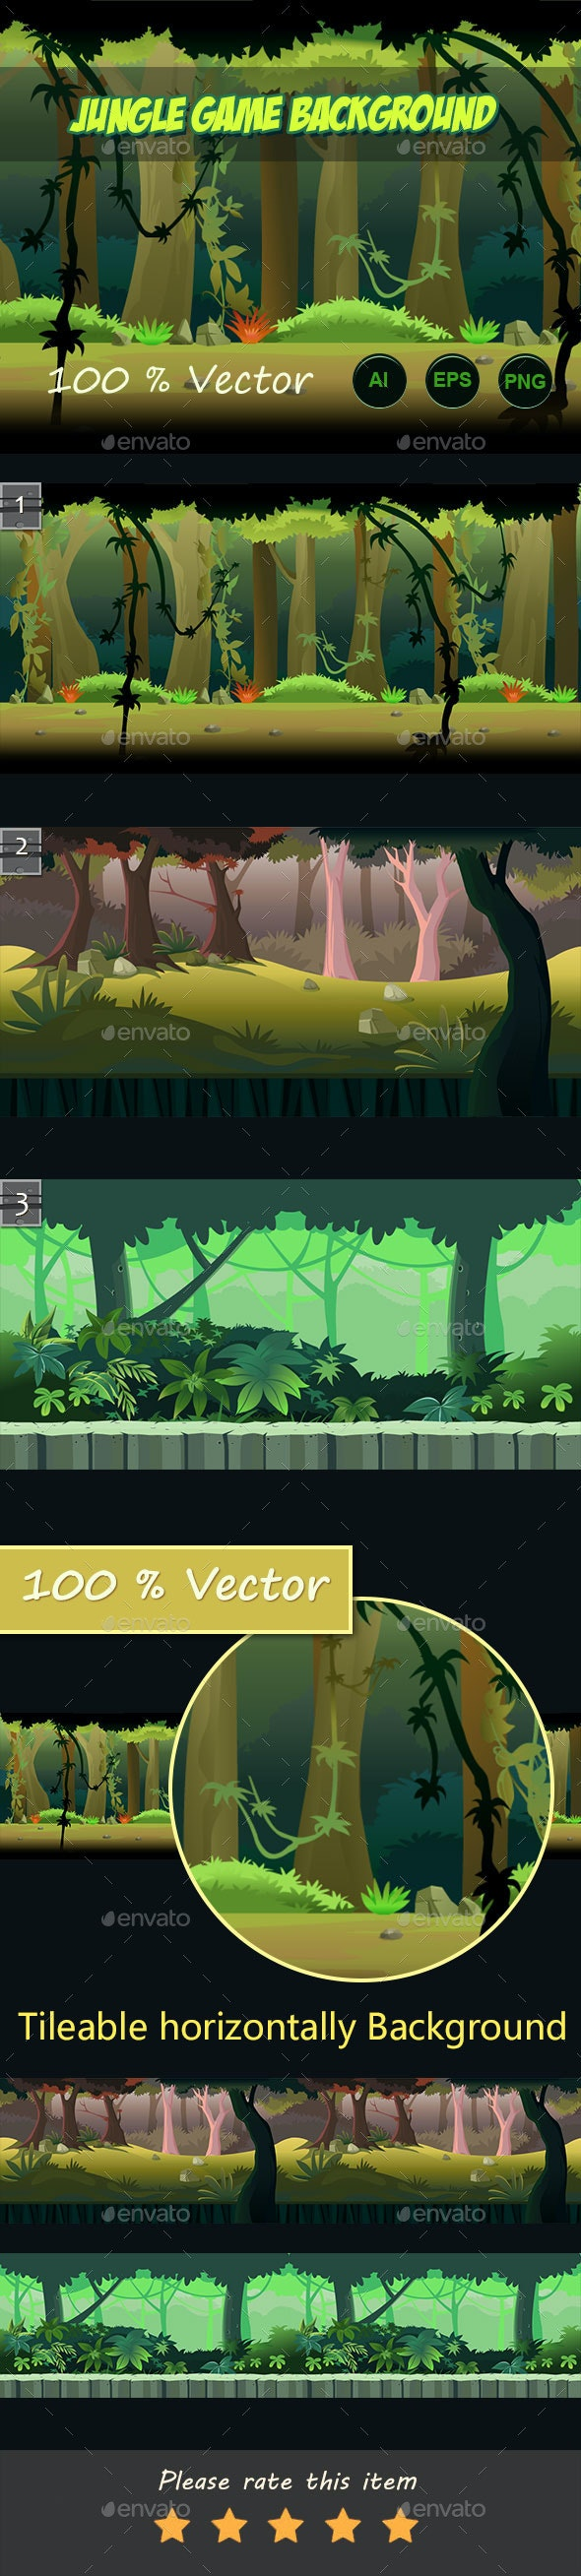 jungle run game background - Backgrounds Game Assets